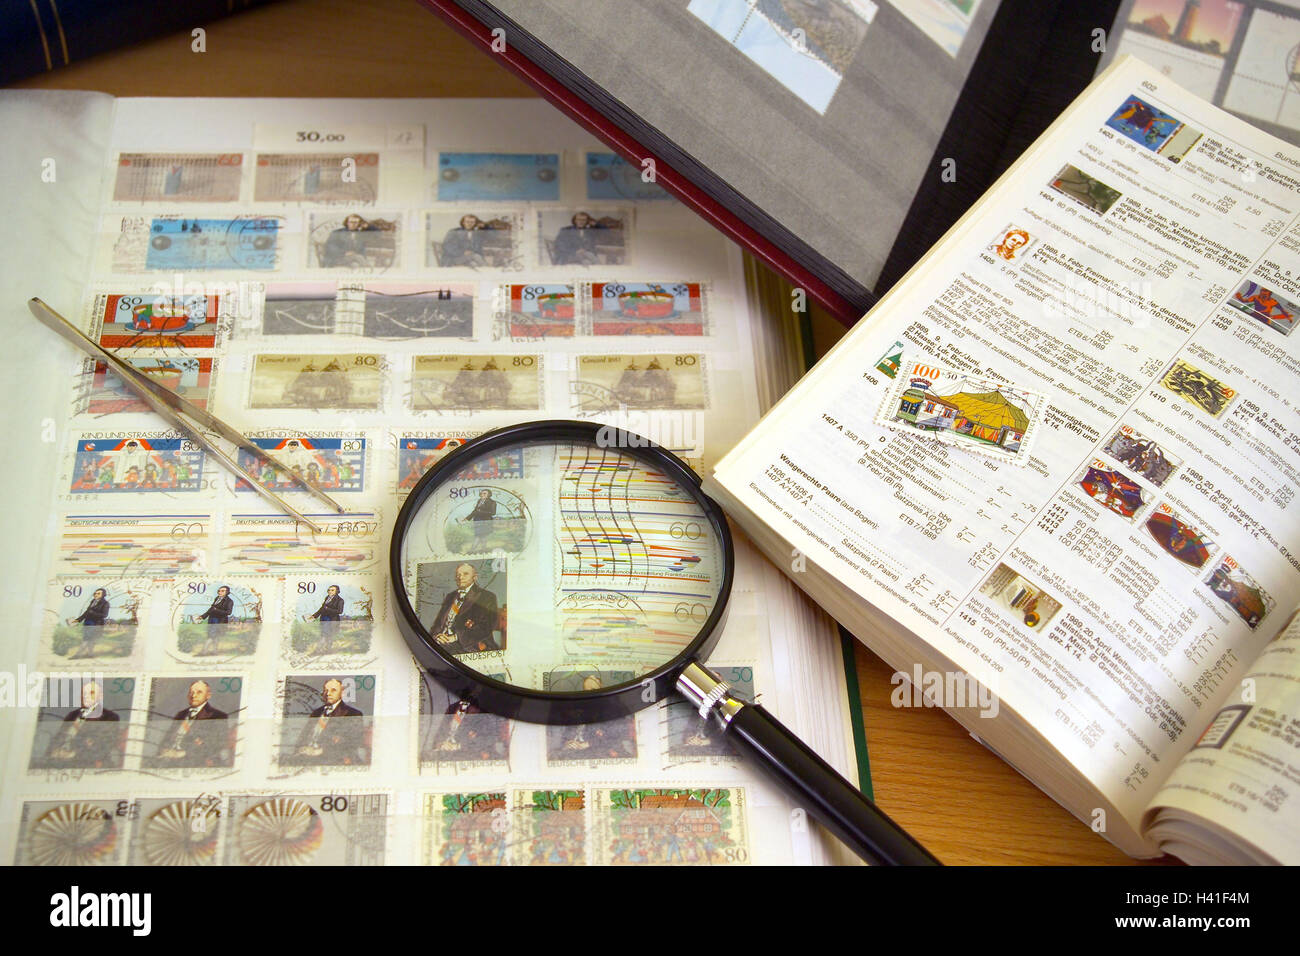 Loupe, tweezers, stamp, album, curled, leisure time, hobby, collection, stamp collection, collect, philatelic collecting, - Stock Image